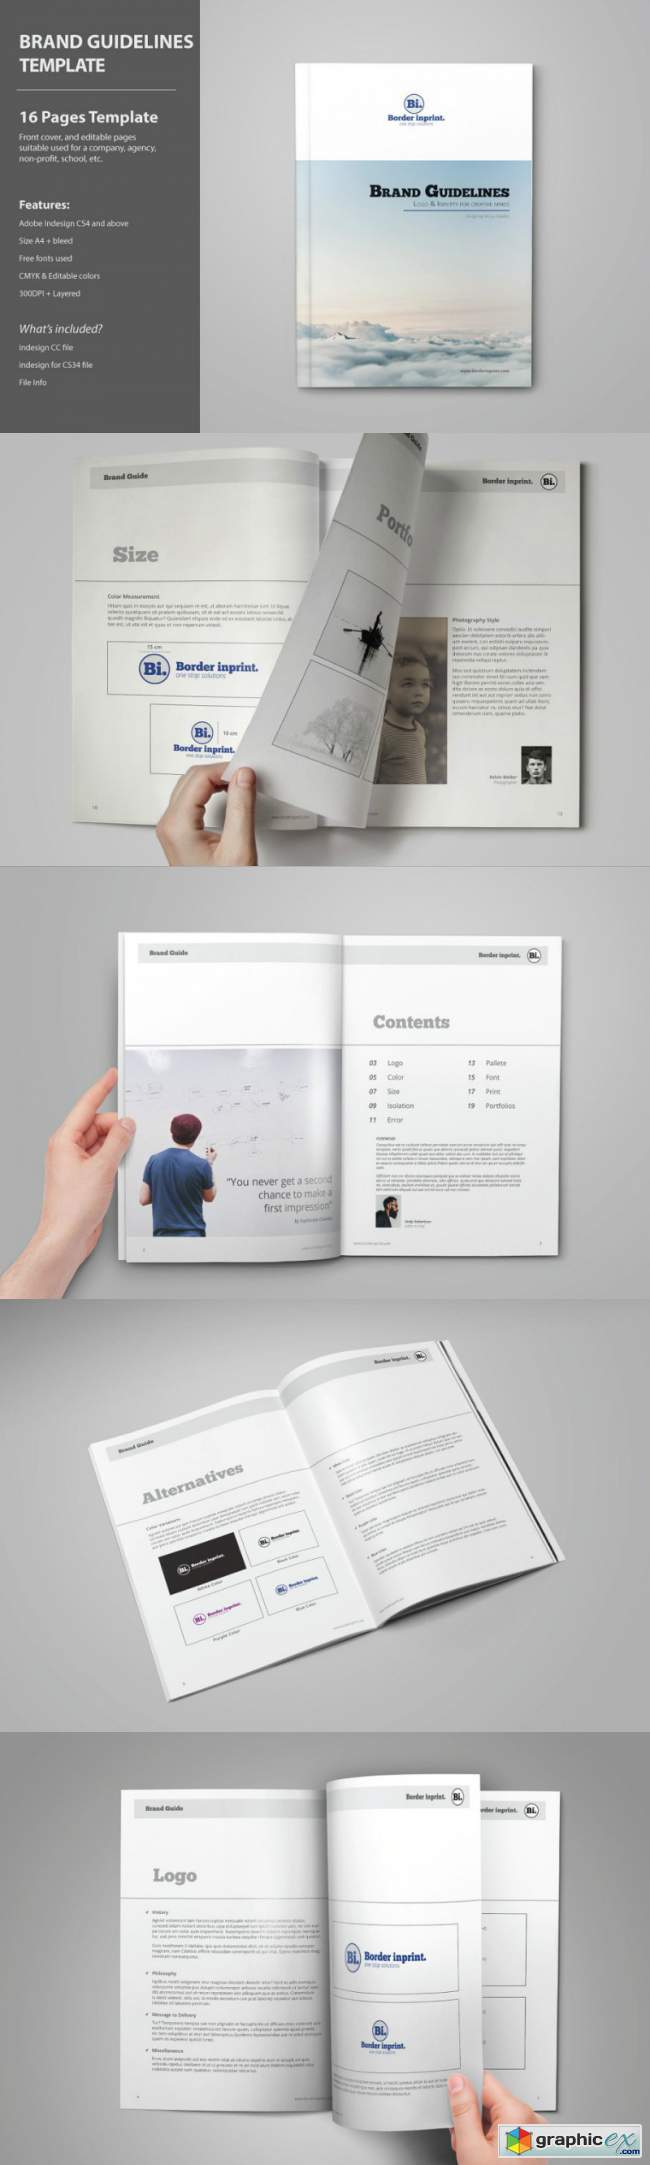 Brand Guidelines Template 3806084